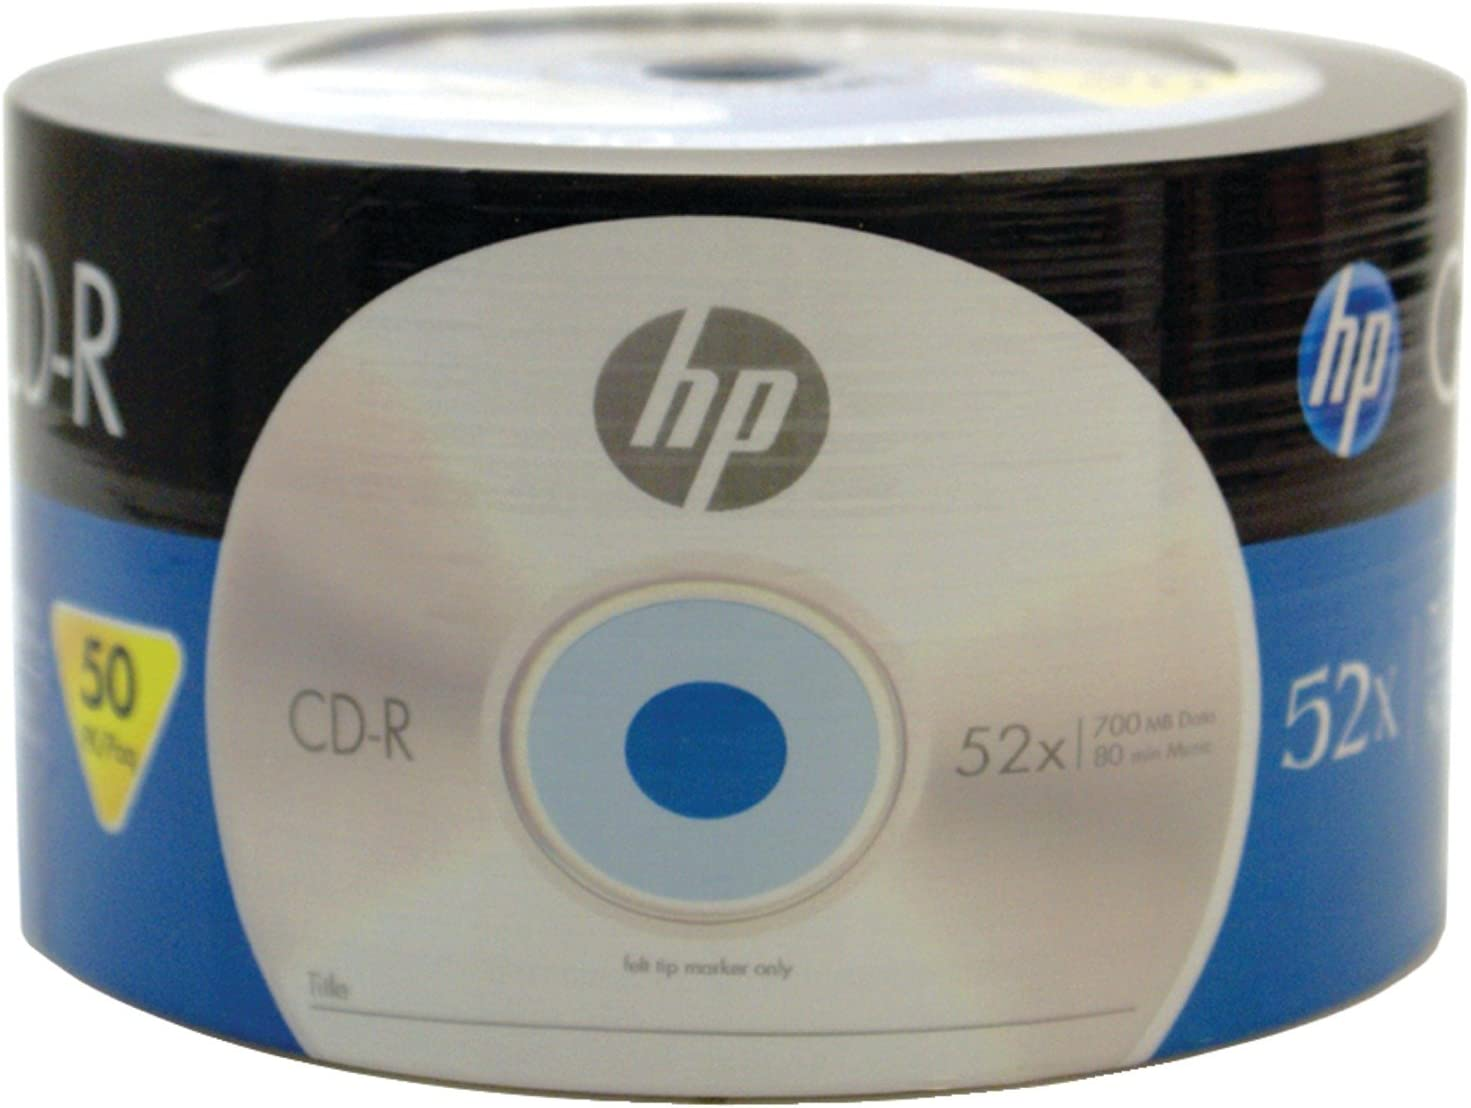 Hp 52x 700MB 80-Minute CD-R Media, 50-Piece, Spindle (CR00070B)